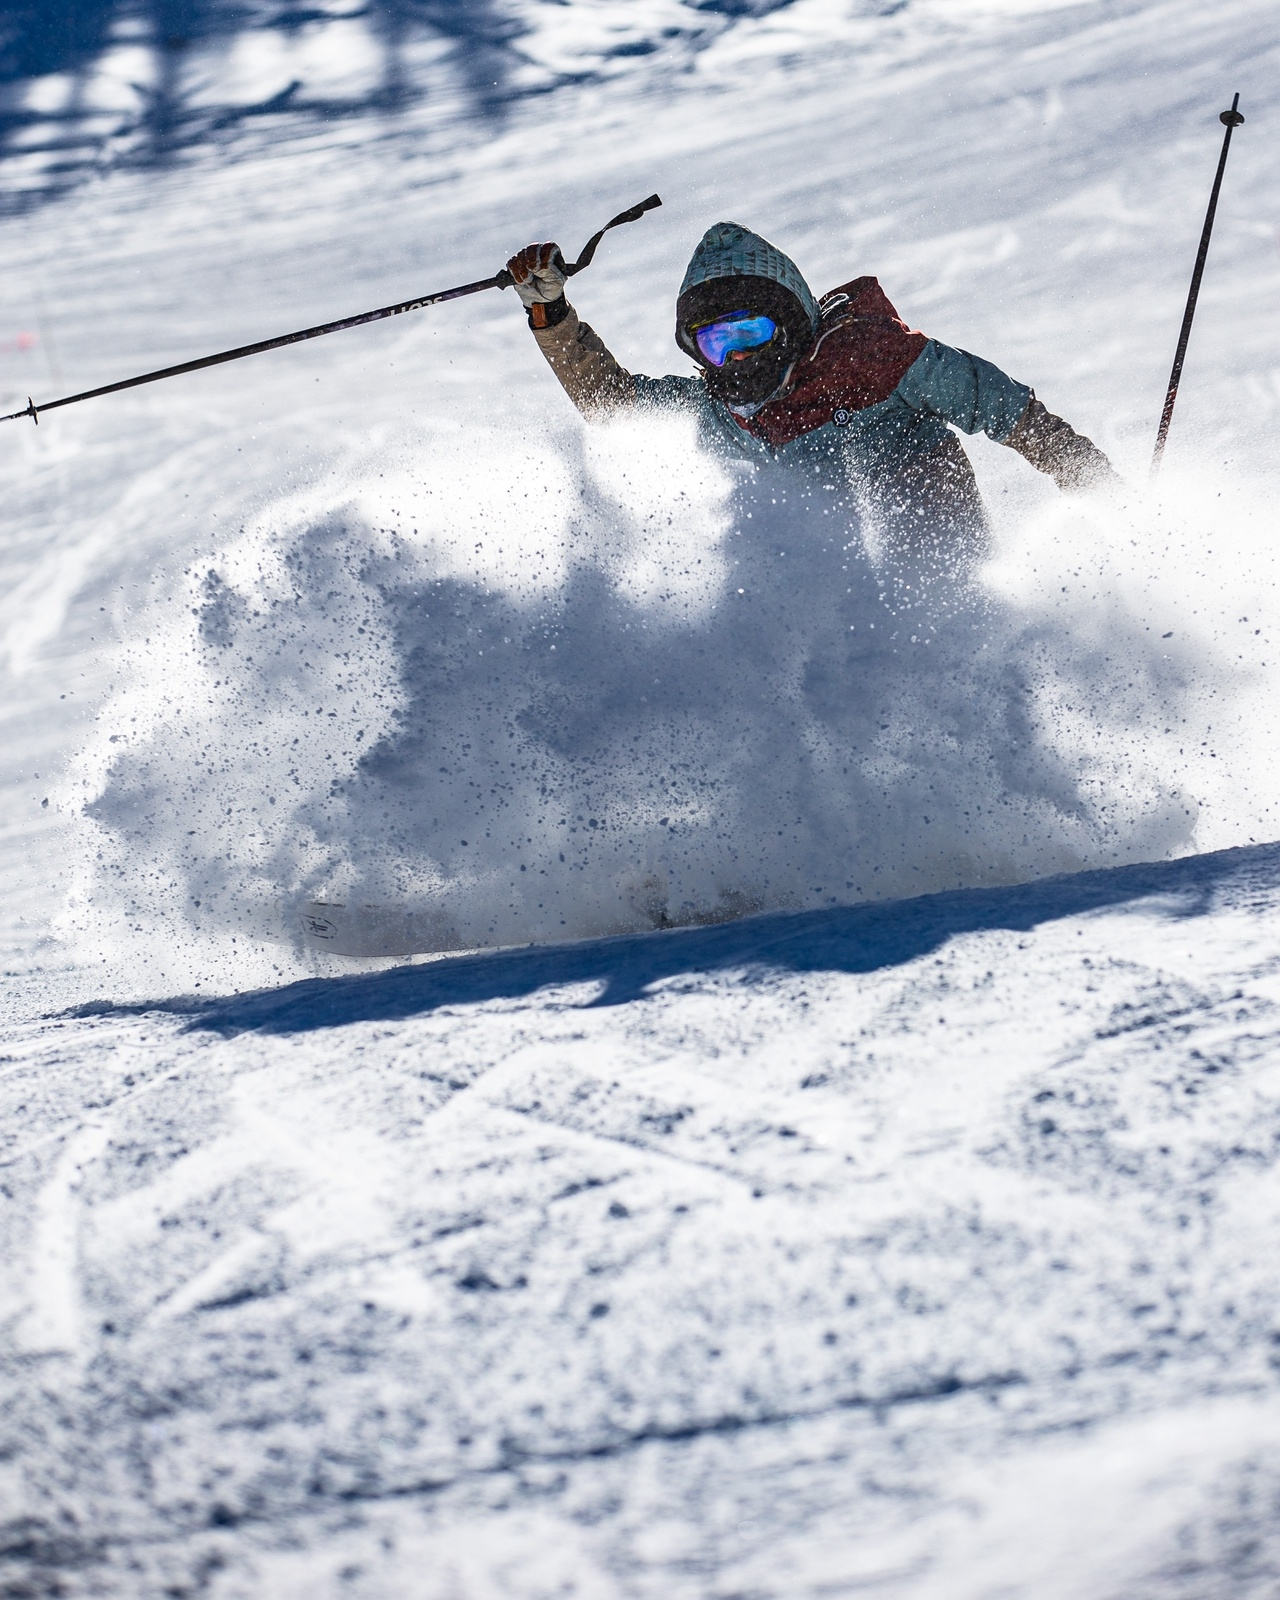 A skier enjoys opening day on Monday, Nov. 30, at Copper Mountain Resort. | Photo by Liz Copan / Studio Copan